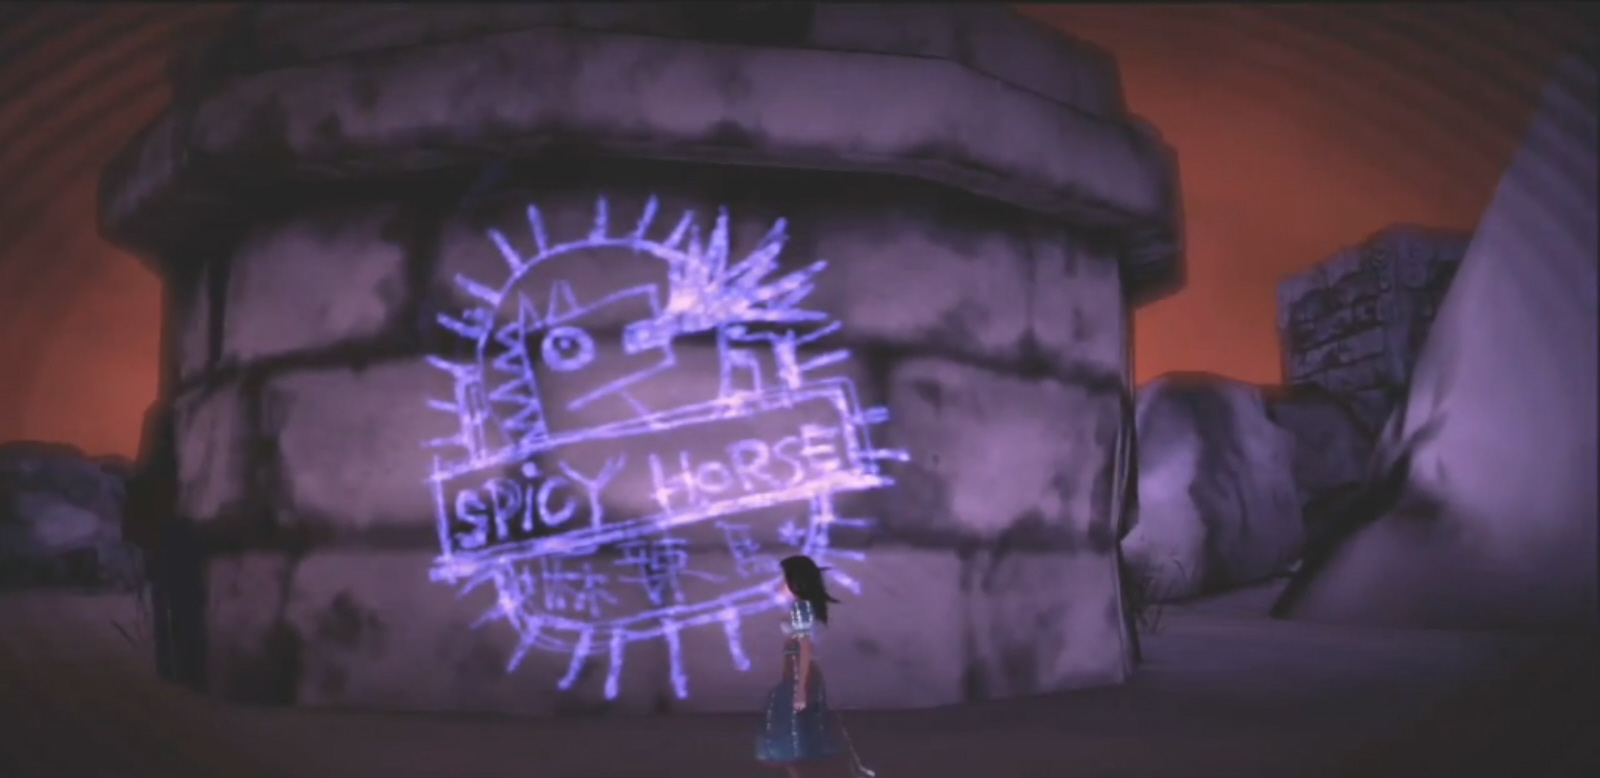 Alice Madness Returns Walkthrough Chapter 2 alice madness returns shrink sense decal location guide (pc